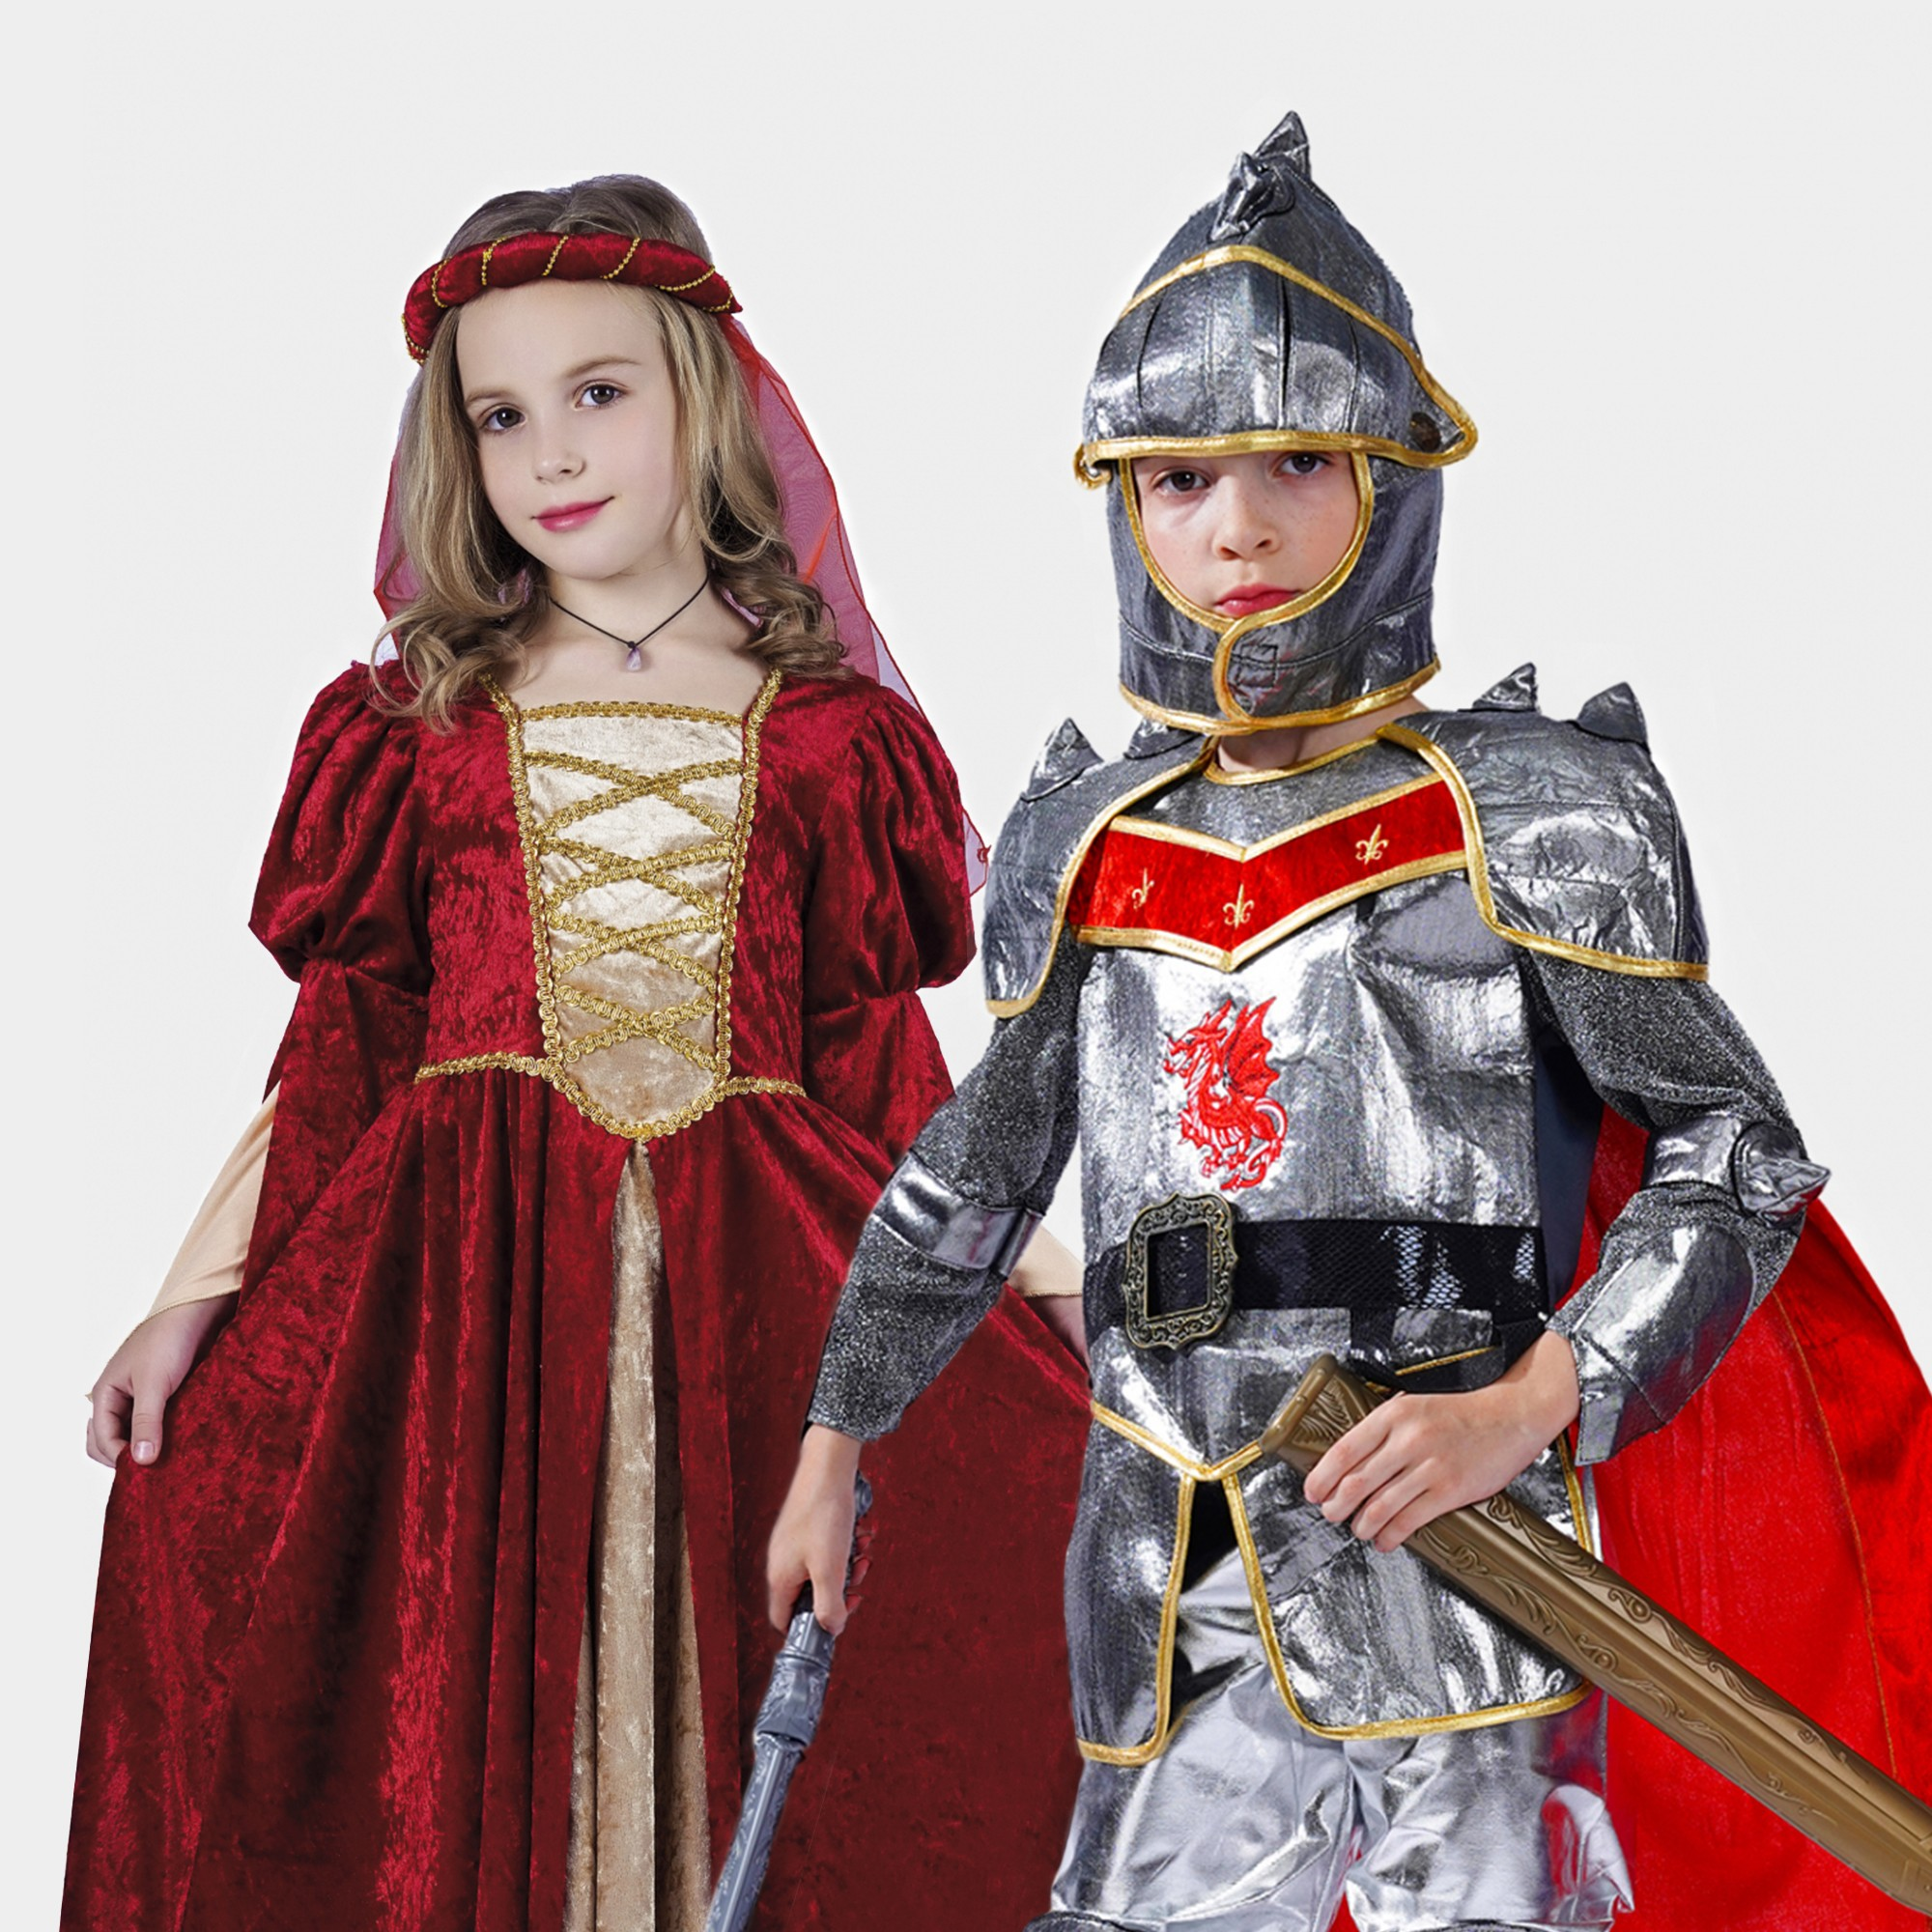 Historical costumes and eras